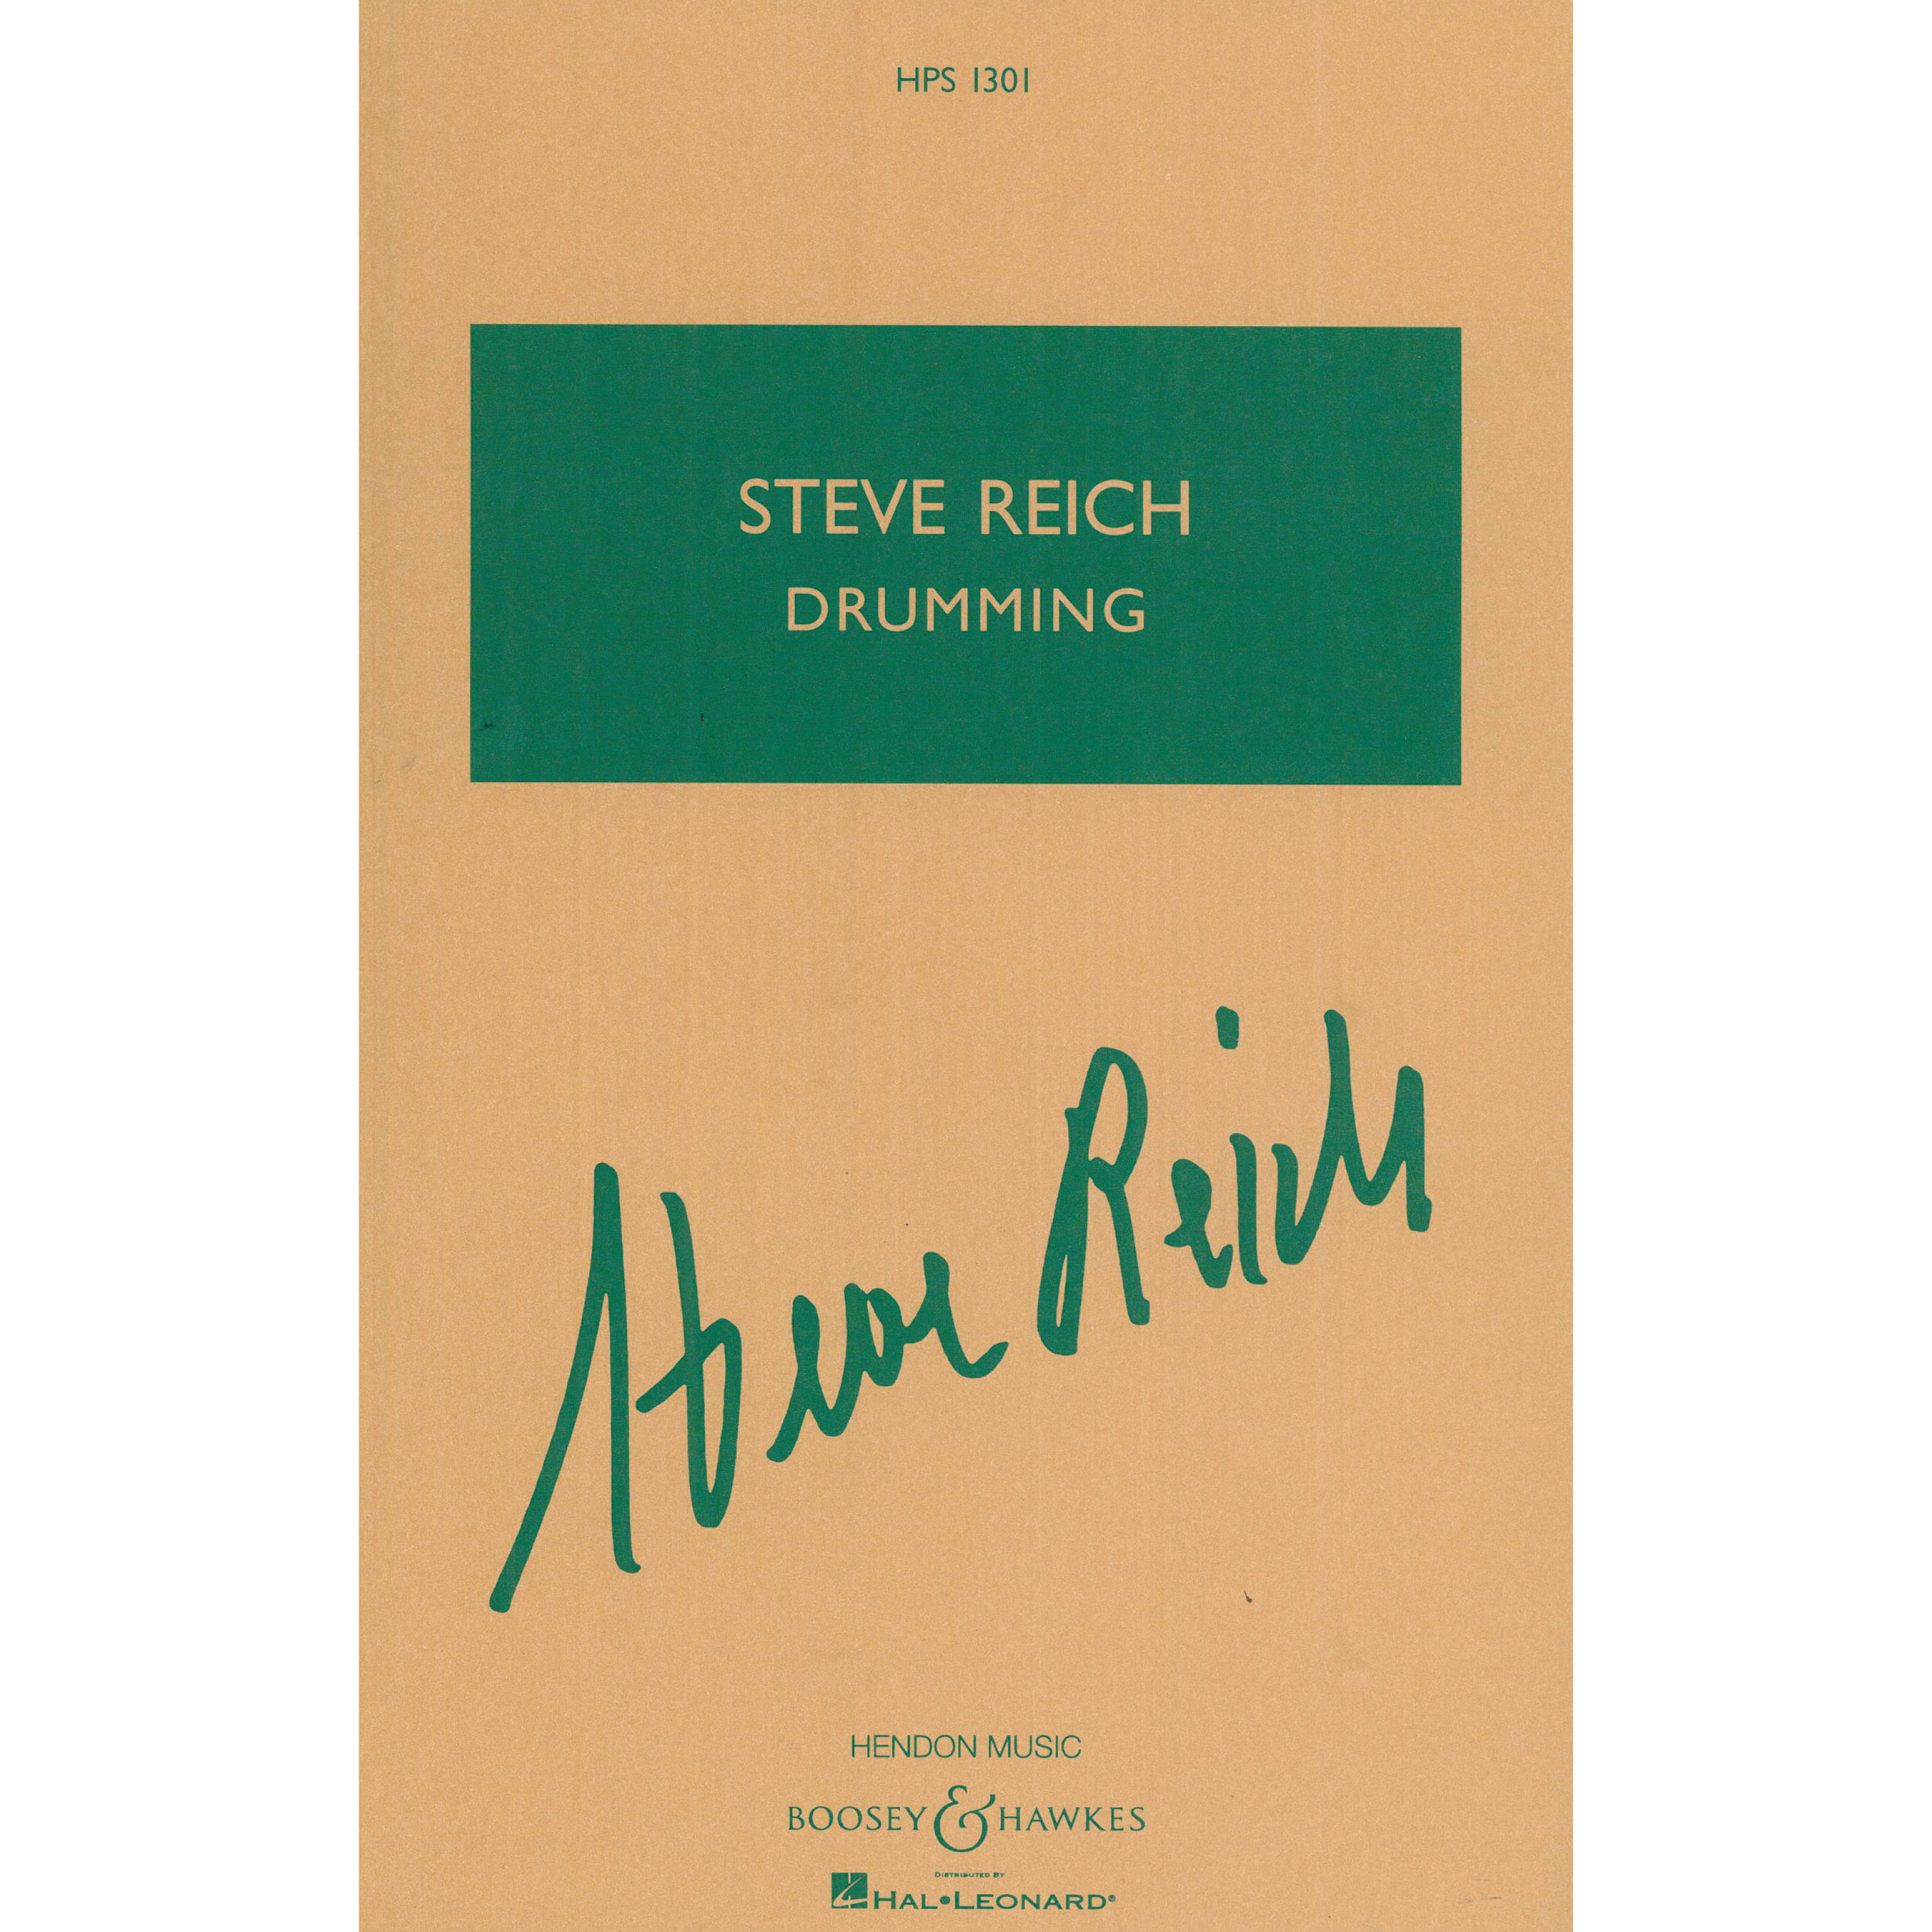 Drumming by Steve Reich (Score Only)